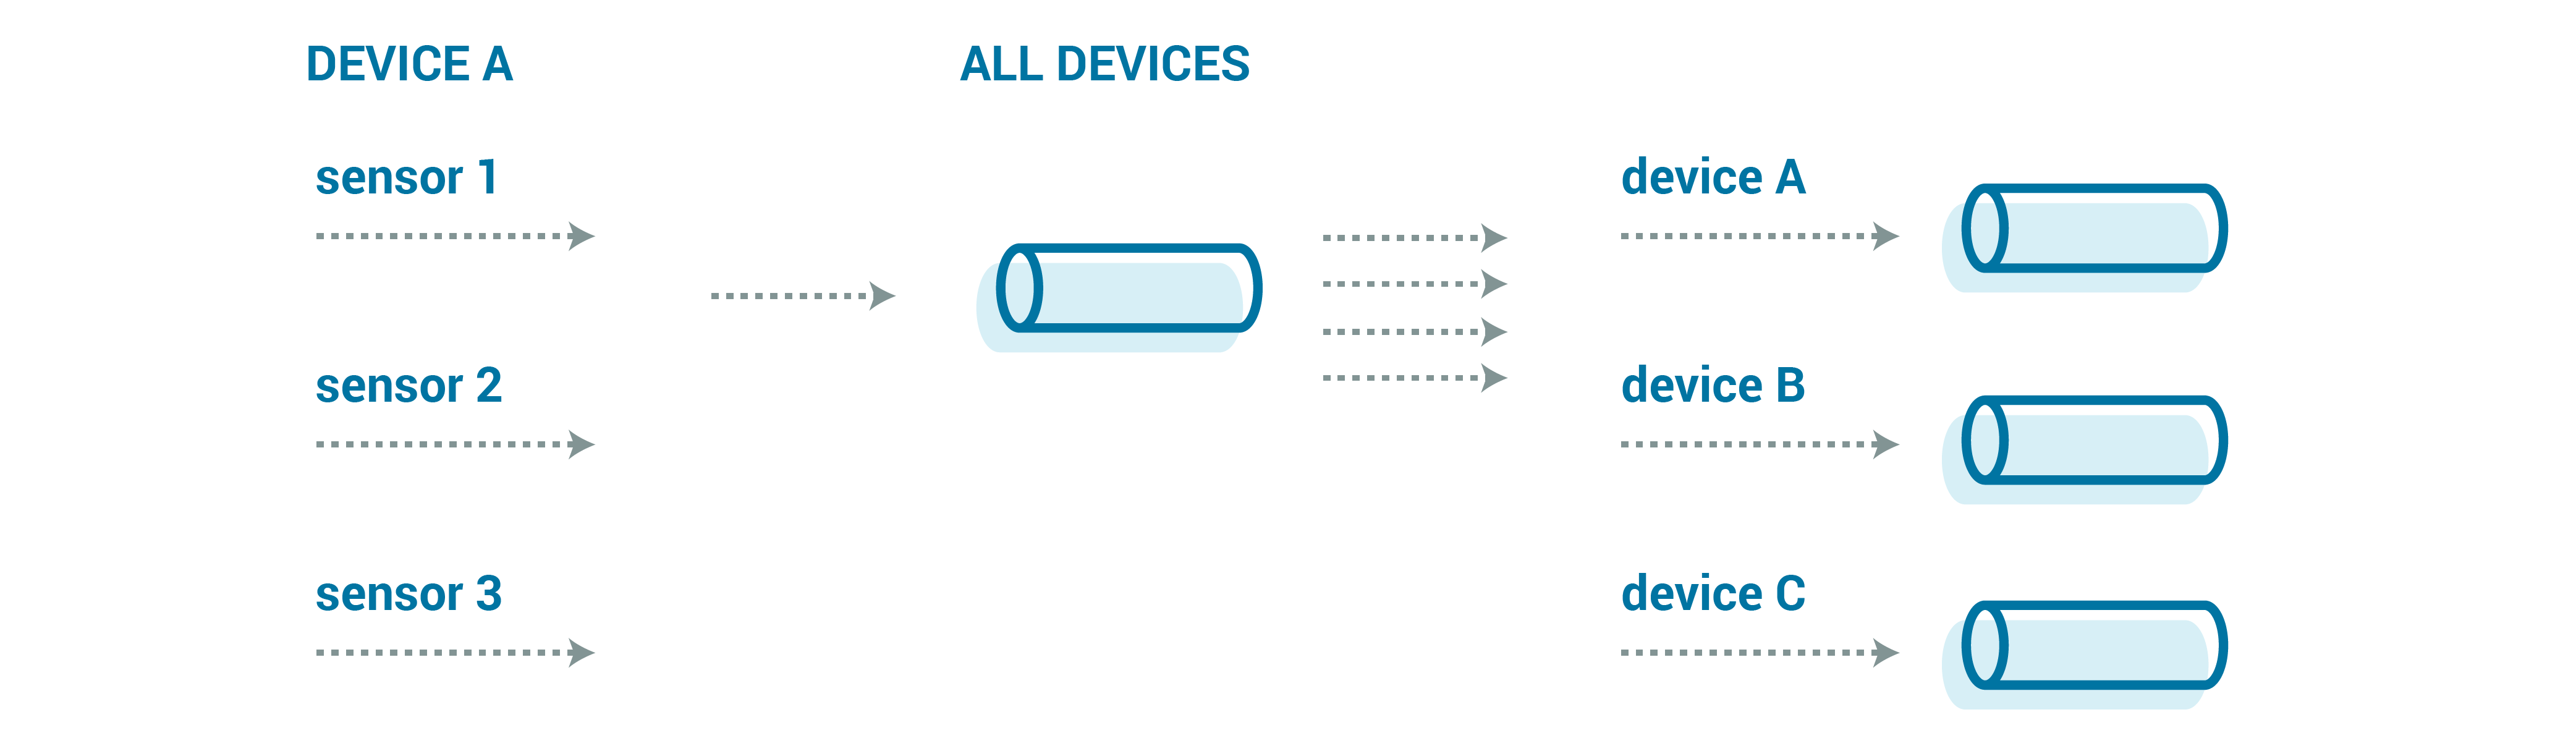 Device A | All Devices